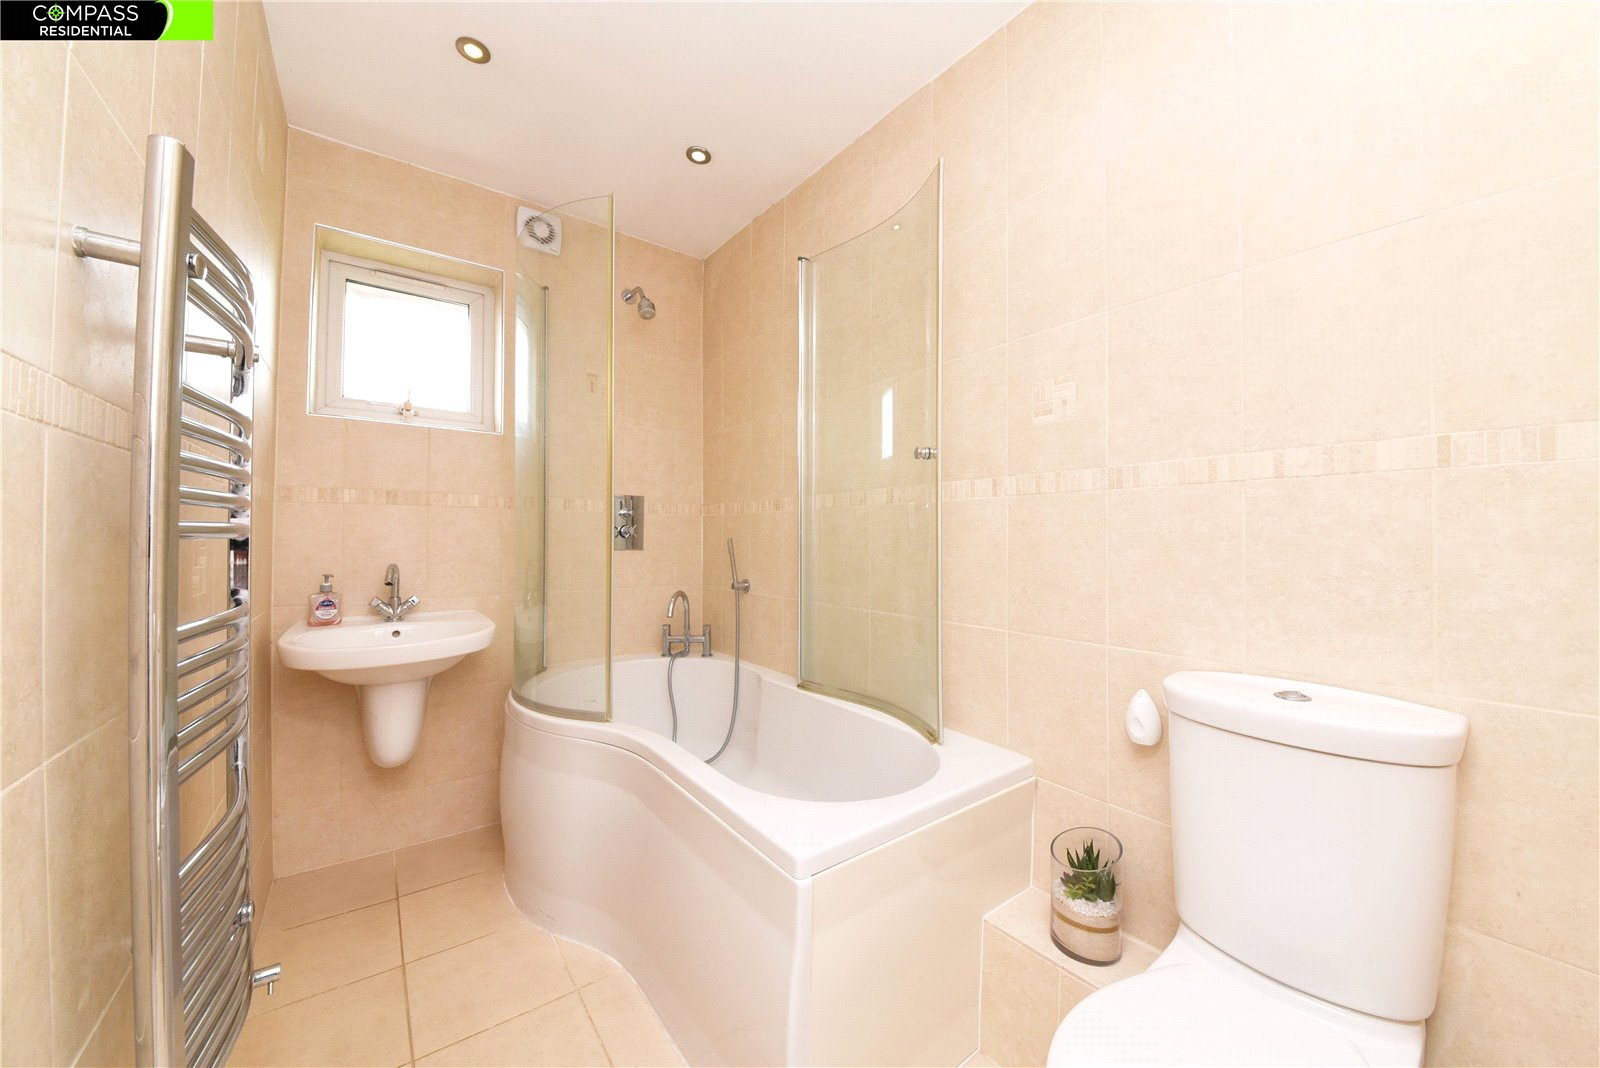 4 bed house for sale in Stanmore, HA7 3AZ 10